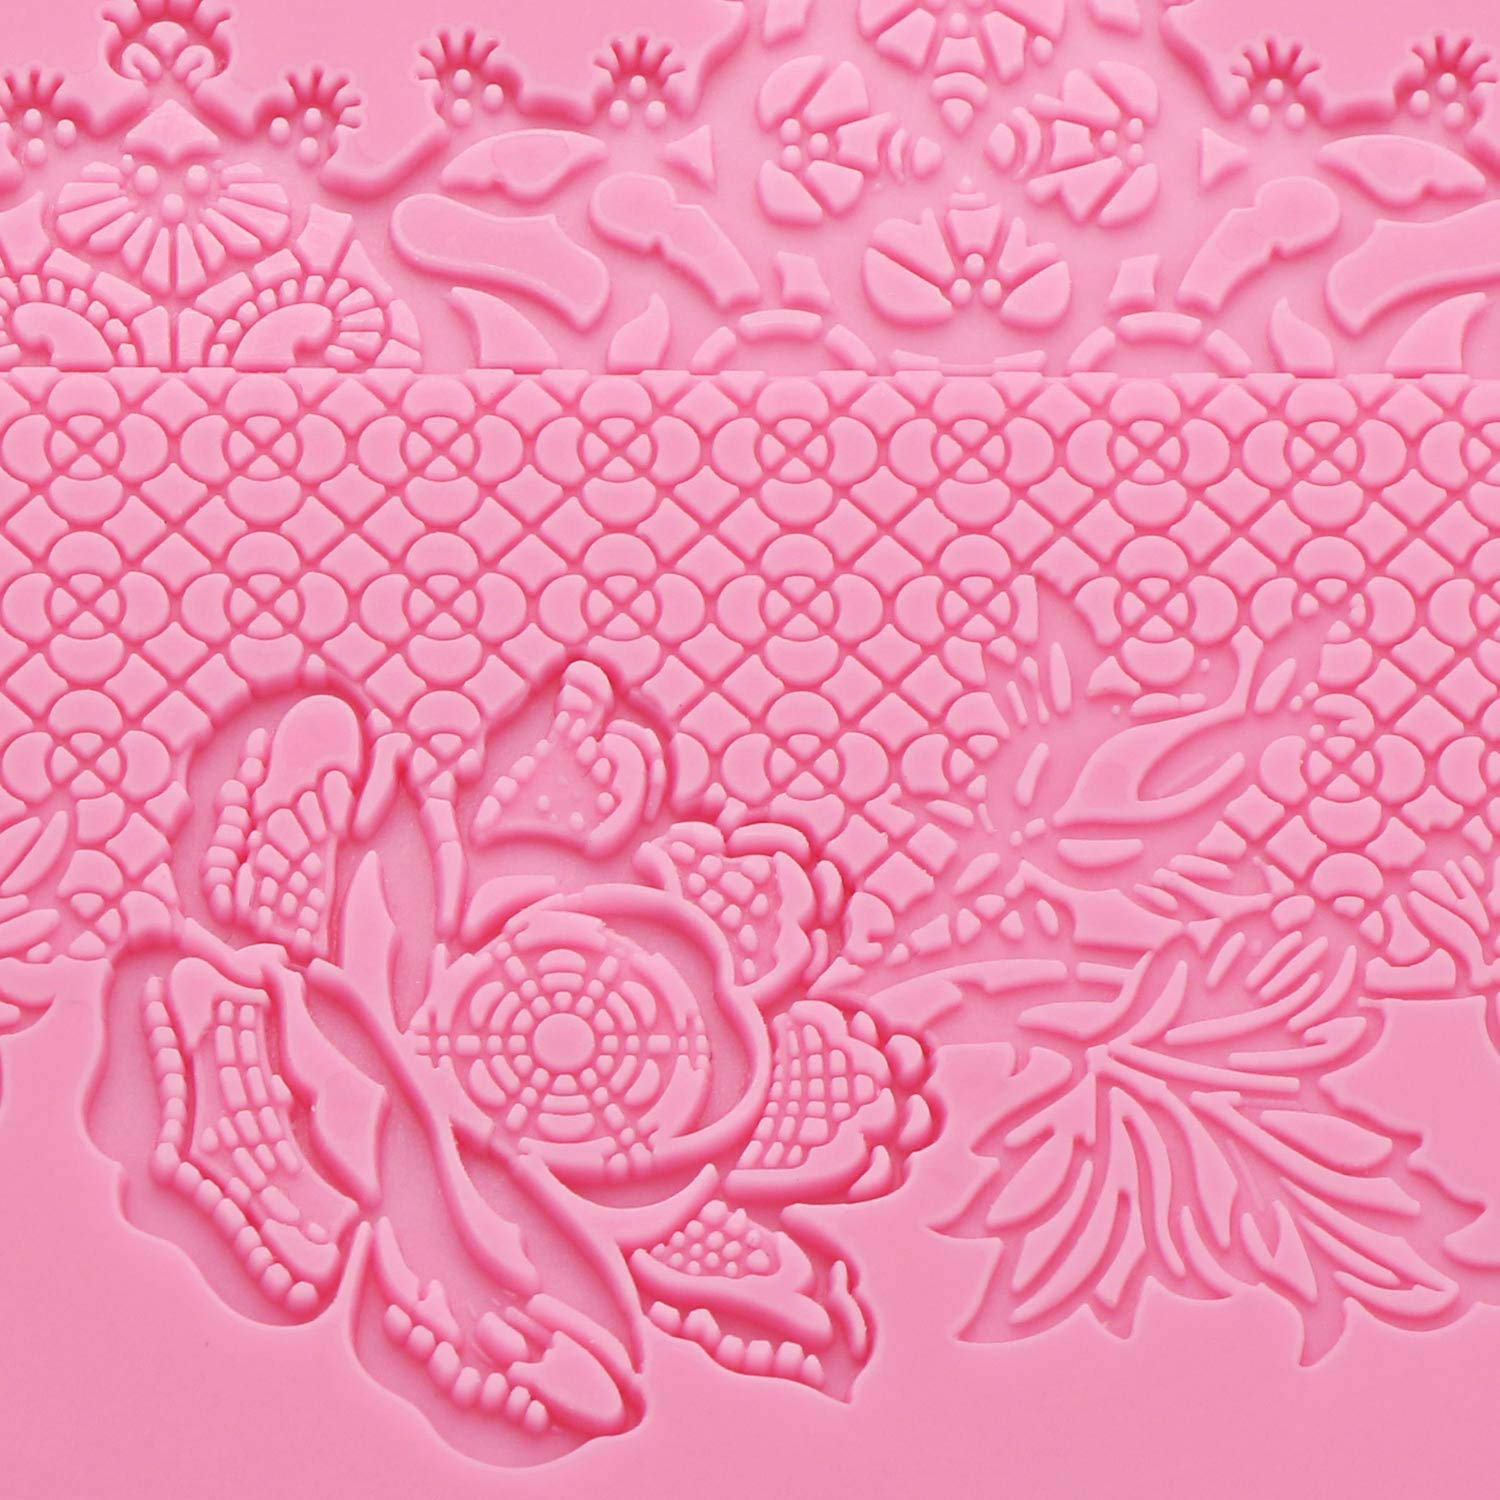 Silicone Lace Molds, Beasea 5pcs Fondant Cake Decorating Tools Lace Decoration Mat Flower Pattern Molds Sugar Craft Tools - Pink by Beasea (Image #5)